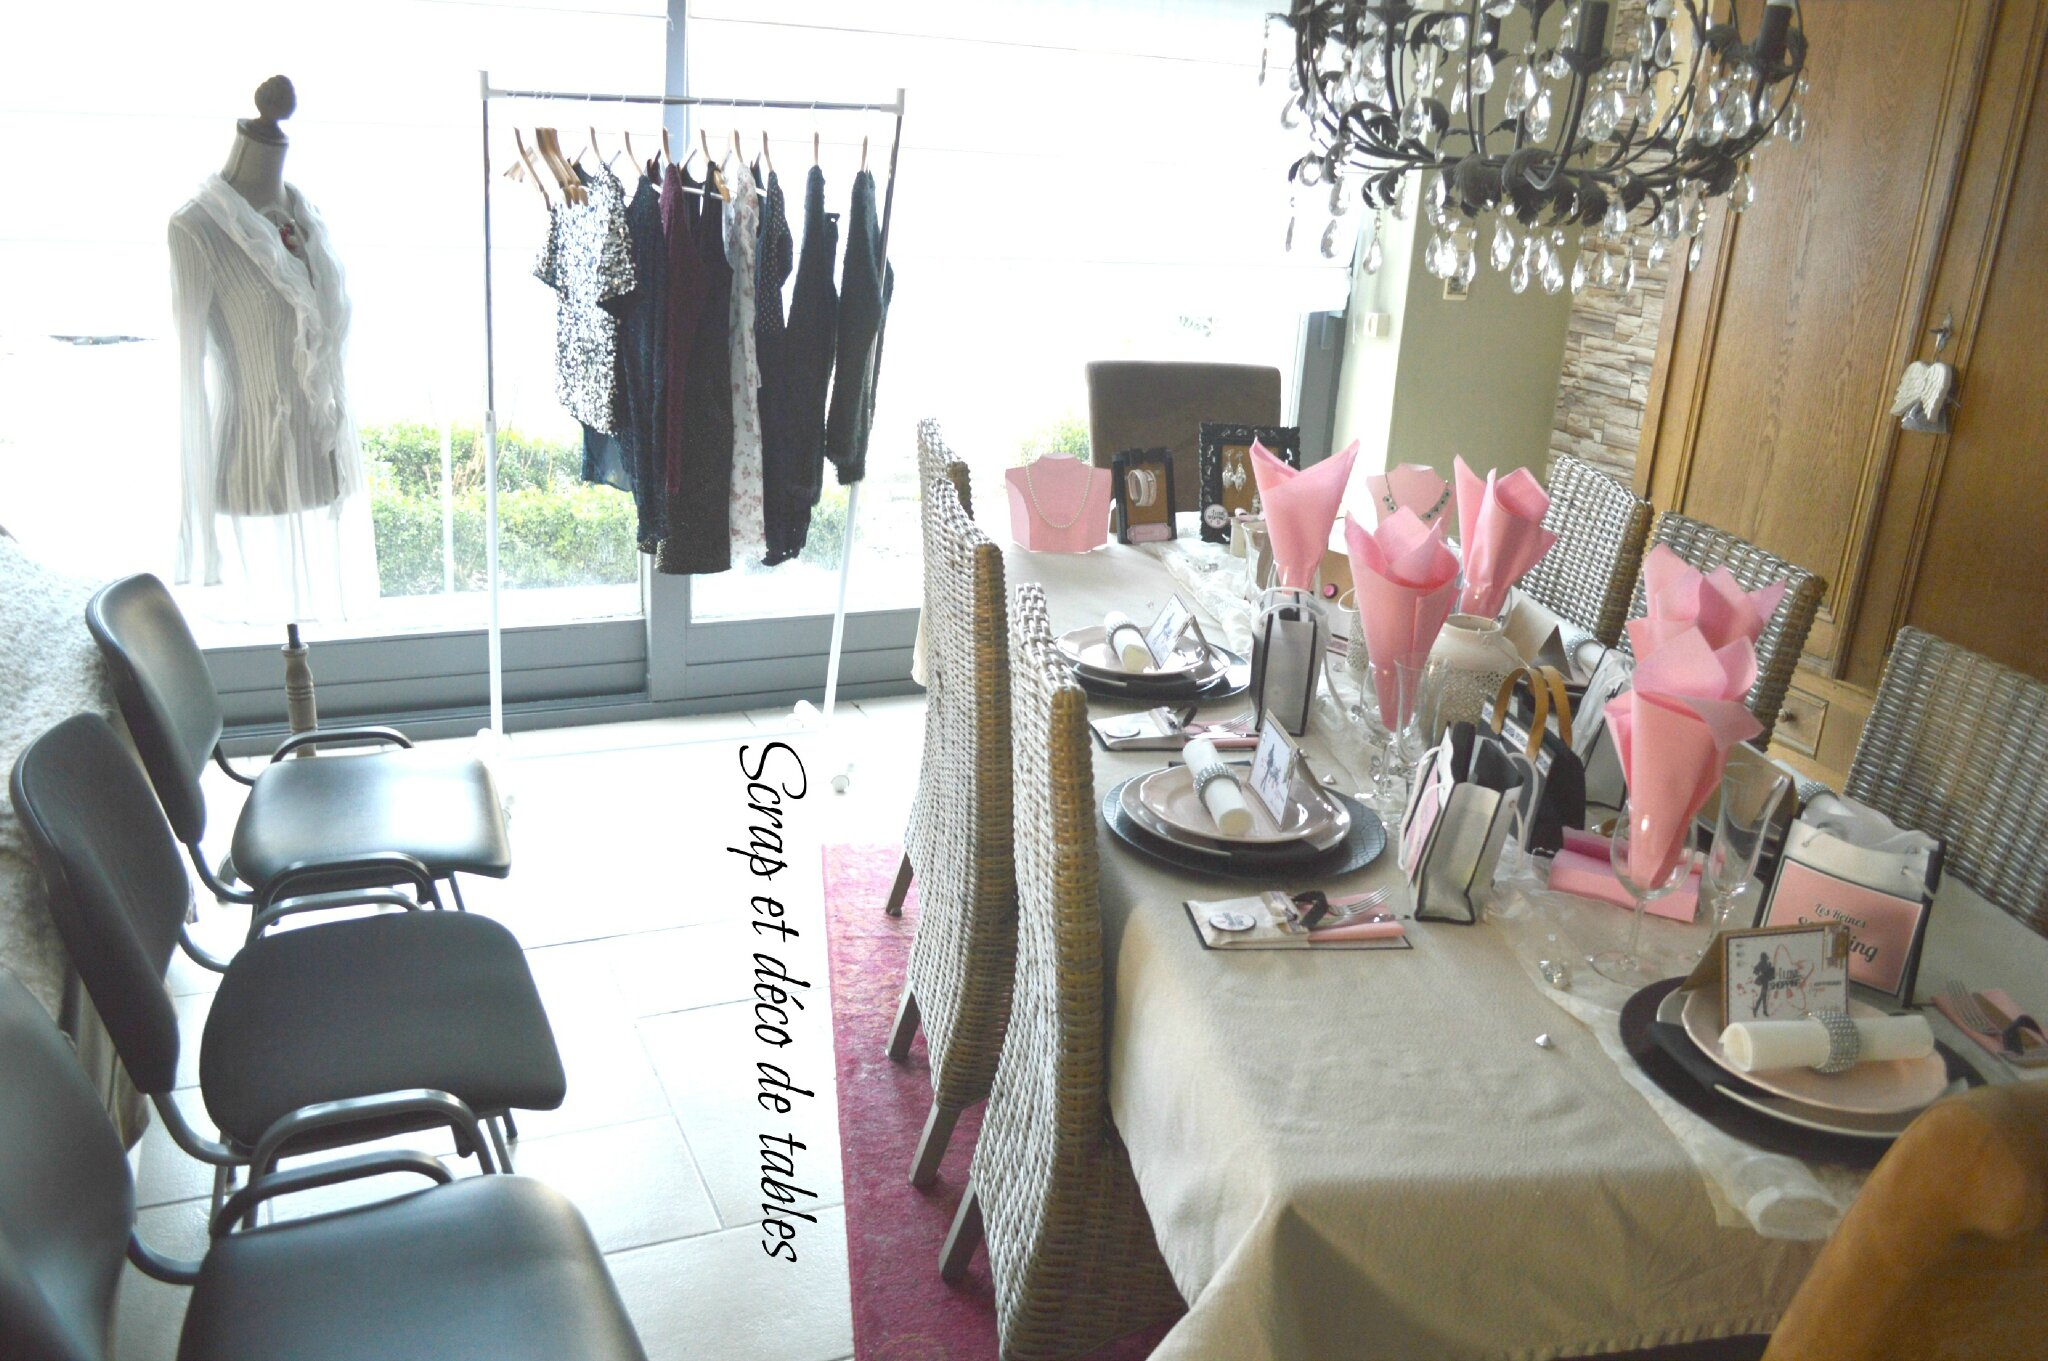 decoration de table les reines du shopping pour les 18 On decoration 18 ans fille